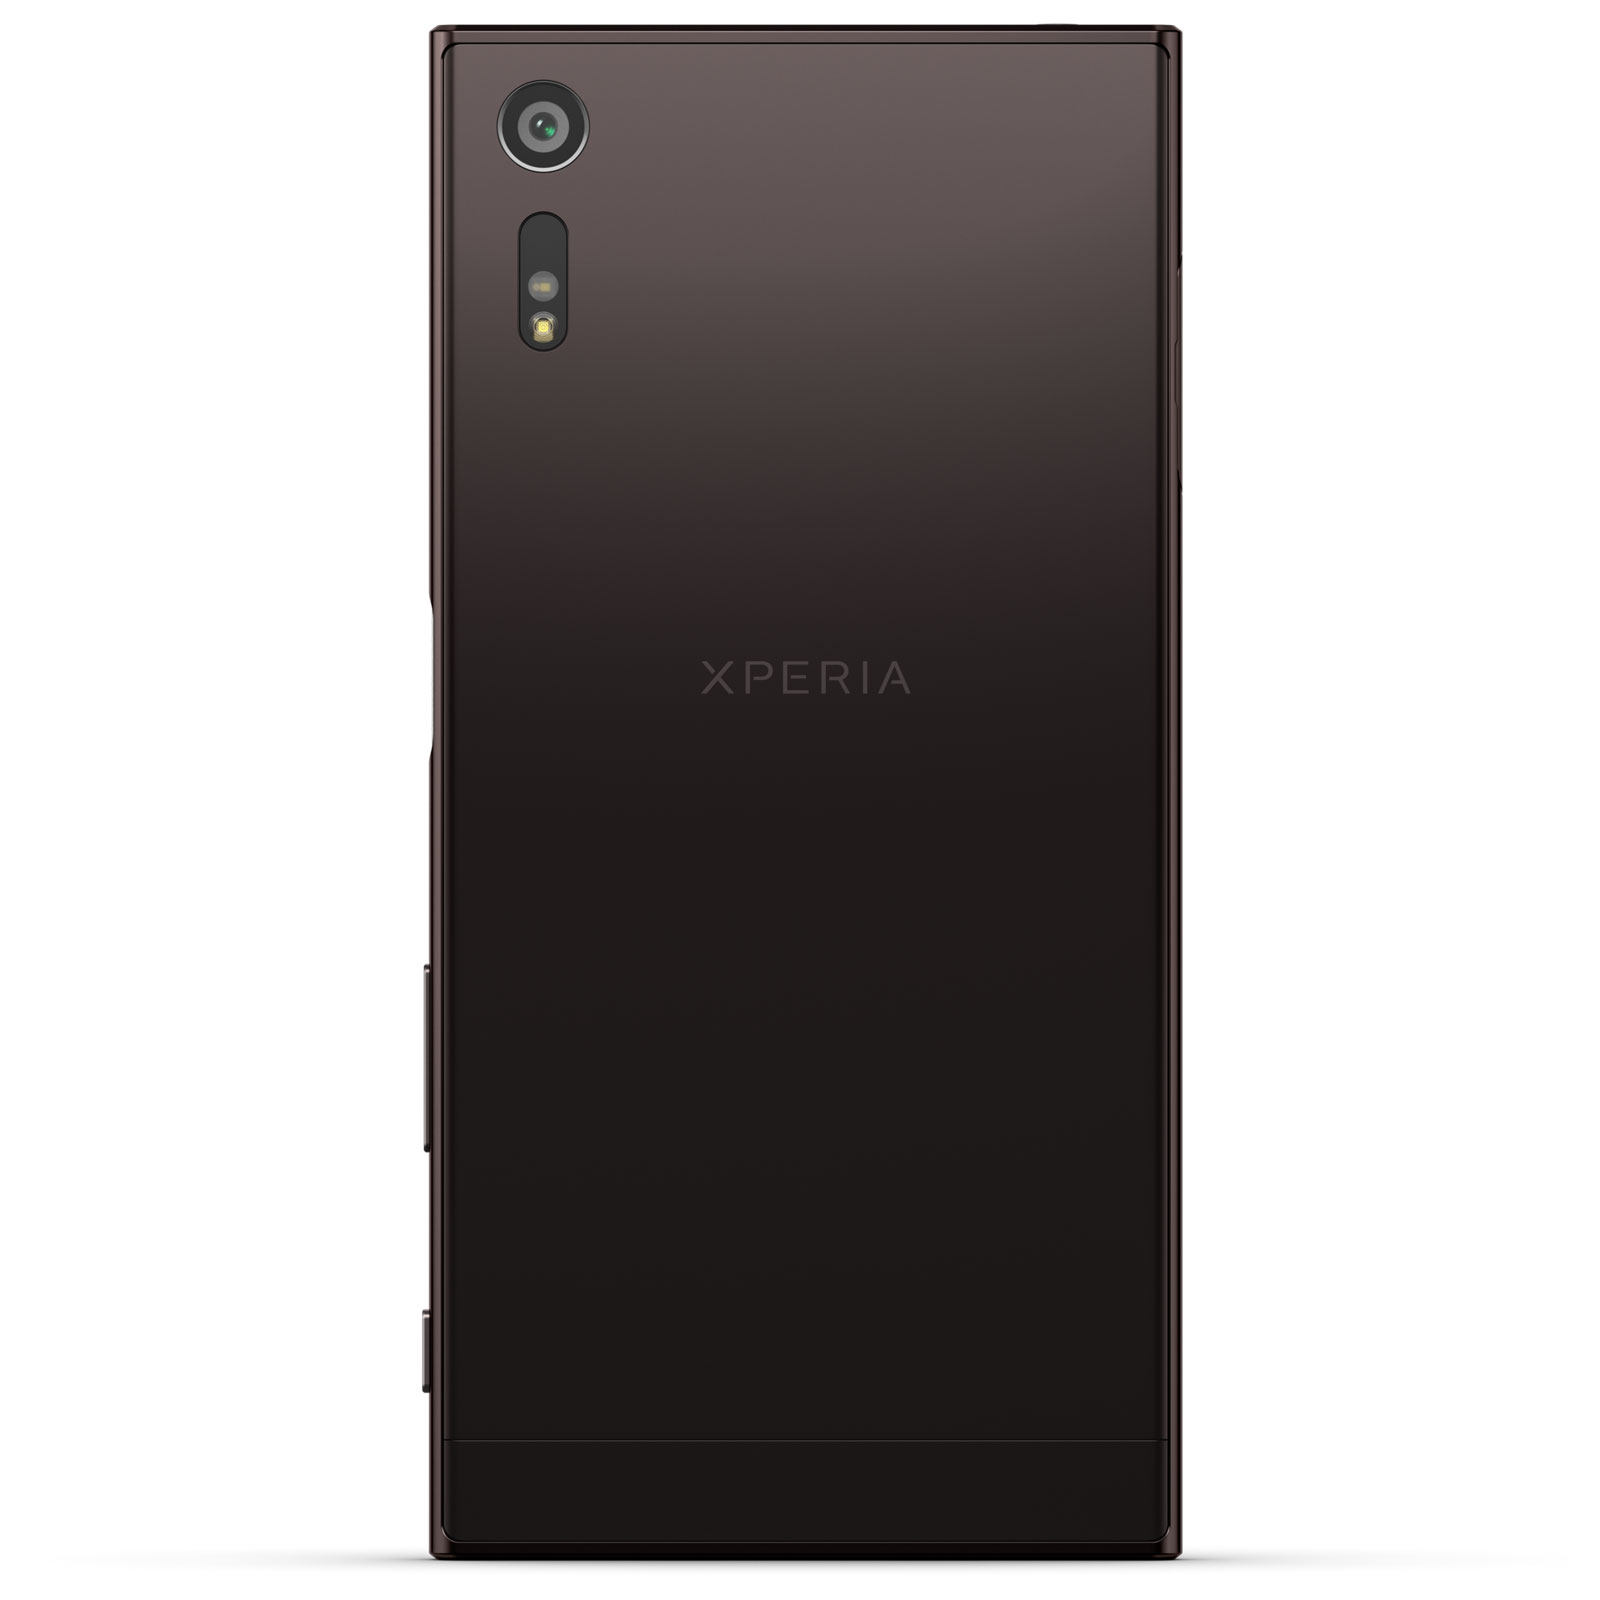 sony xperia xz 32 go noir mobile smartphone sony sur. Black Bedroom Furniture Sets. Home Design Ideas